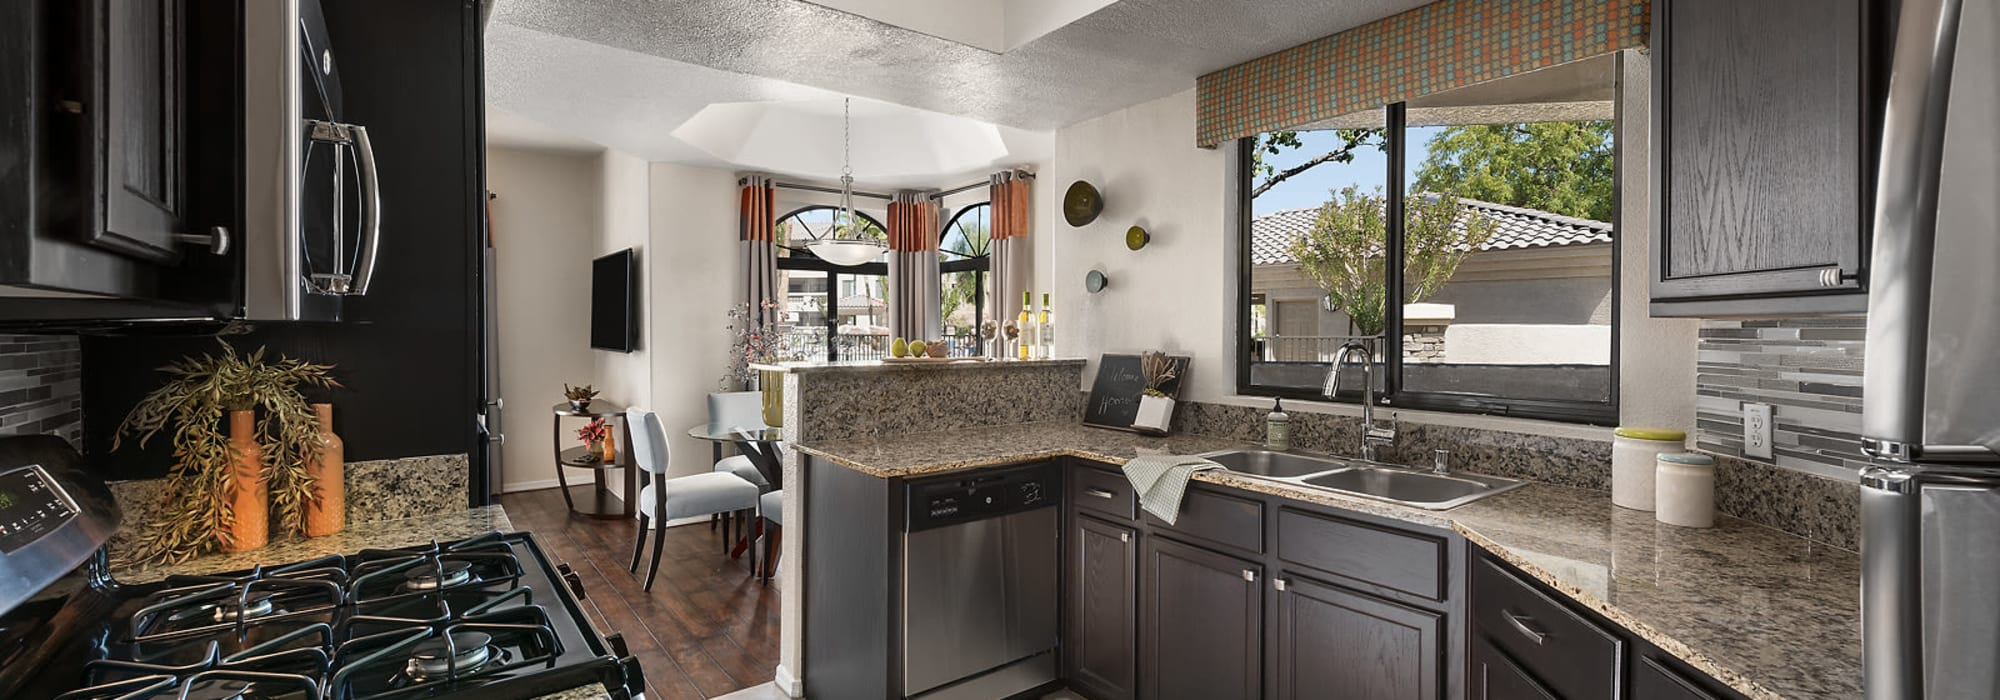 Modern kitchen with black appliances in a model home at San Pedregal in Phoenix, Arizona